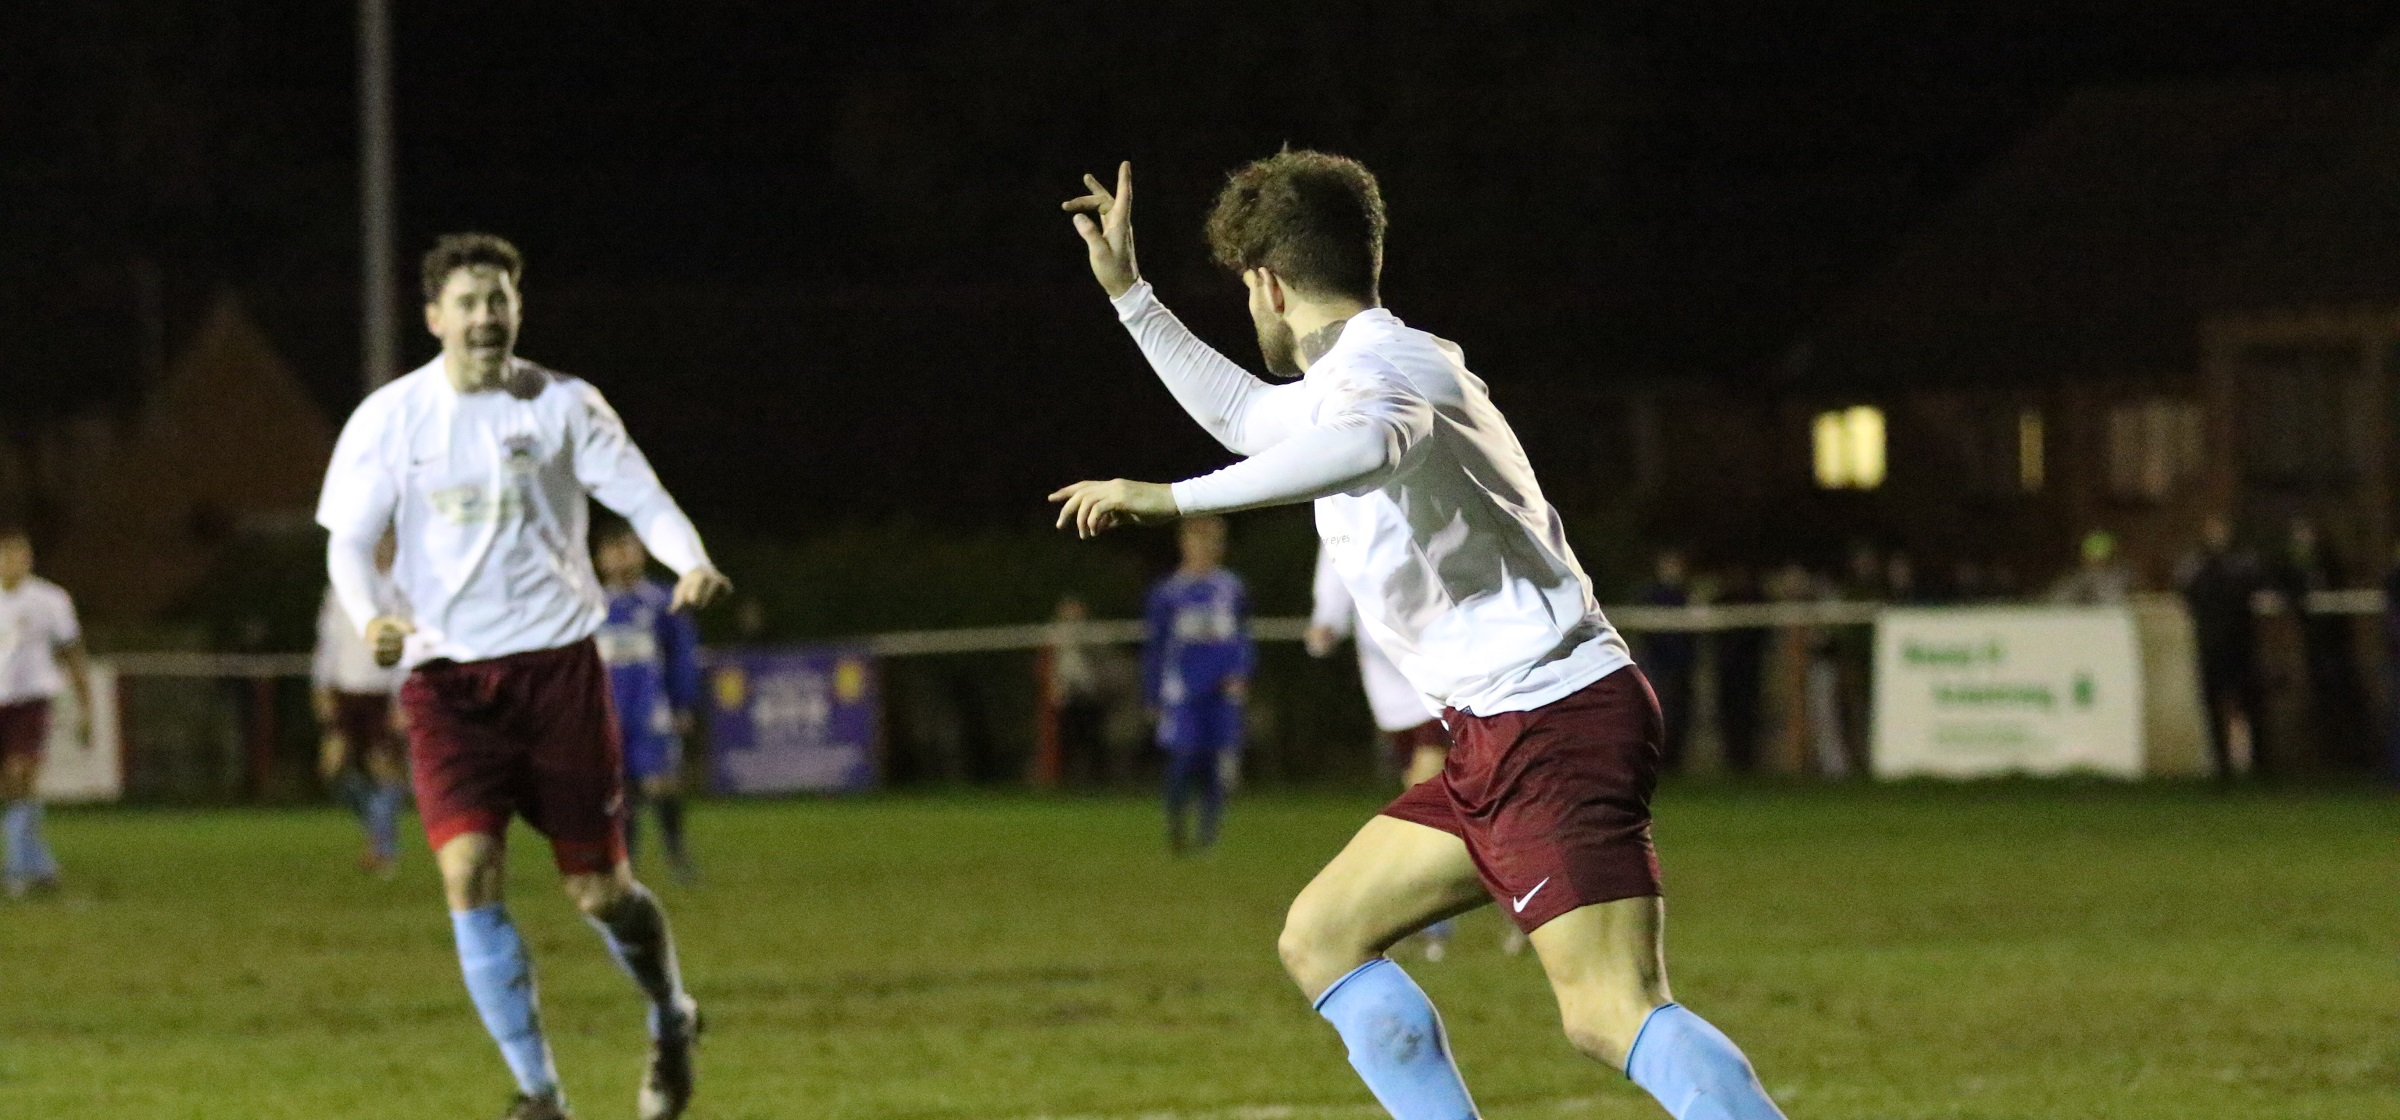 Darlington RA 1-3 South Shields